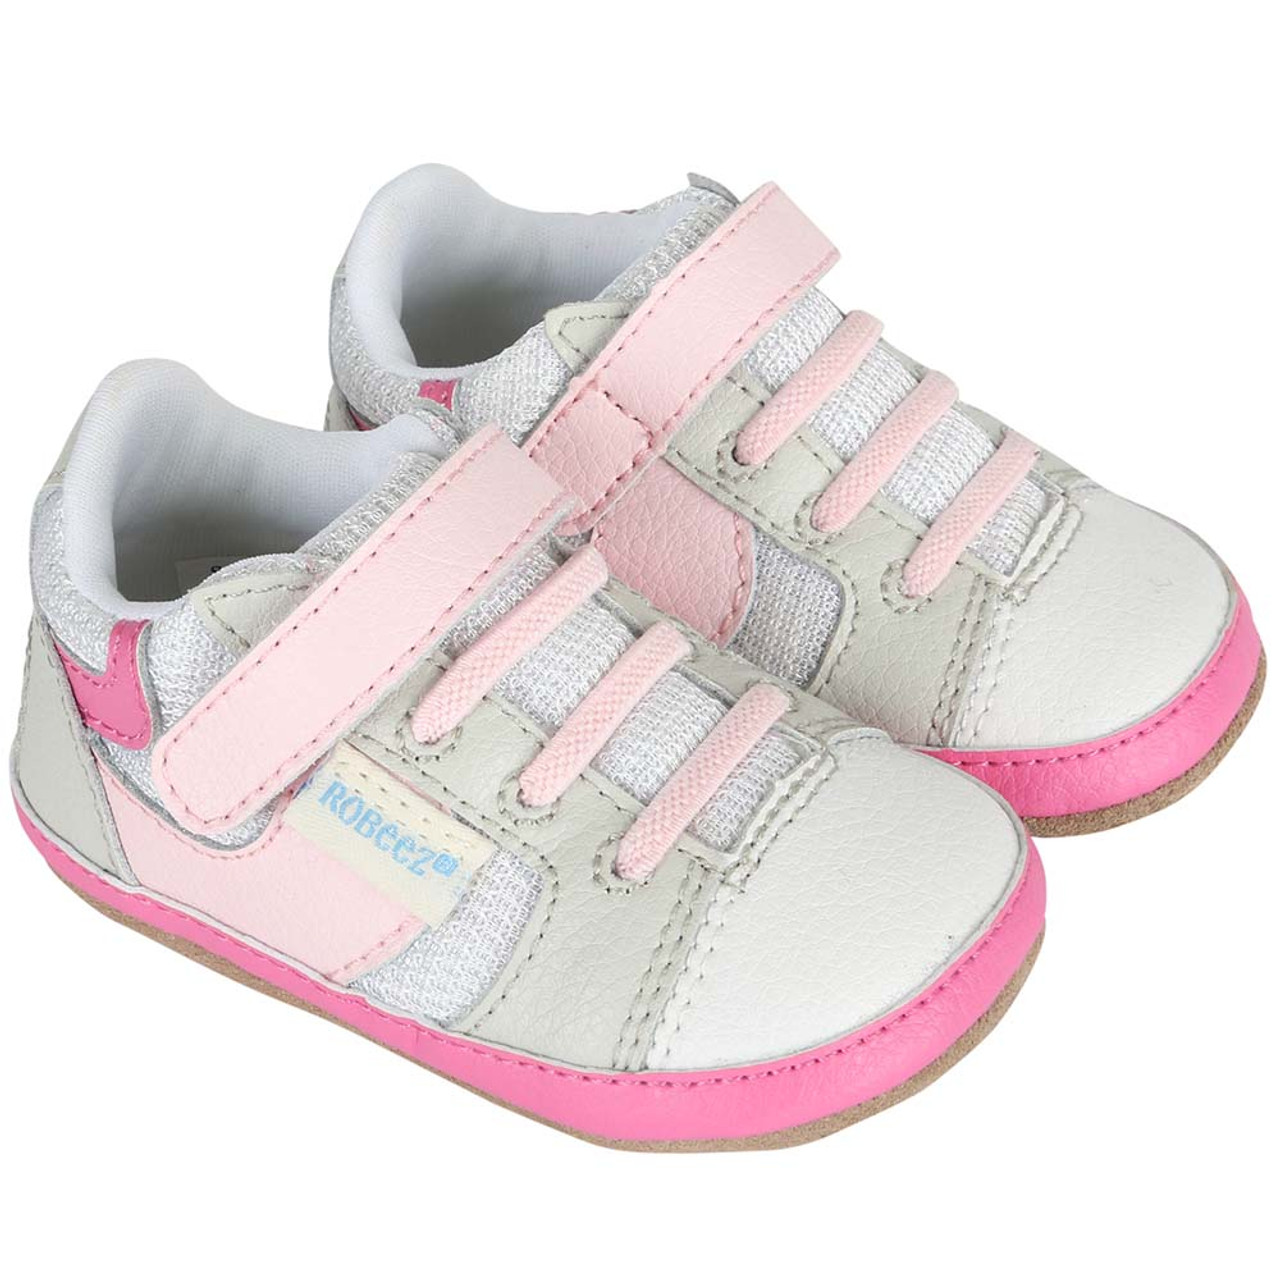 fdfc411a9eb2c Girls baby shoes in white and pink leather. Designed to look like mom's  athletic sneaker